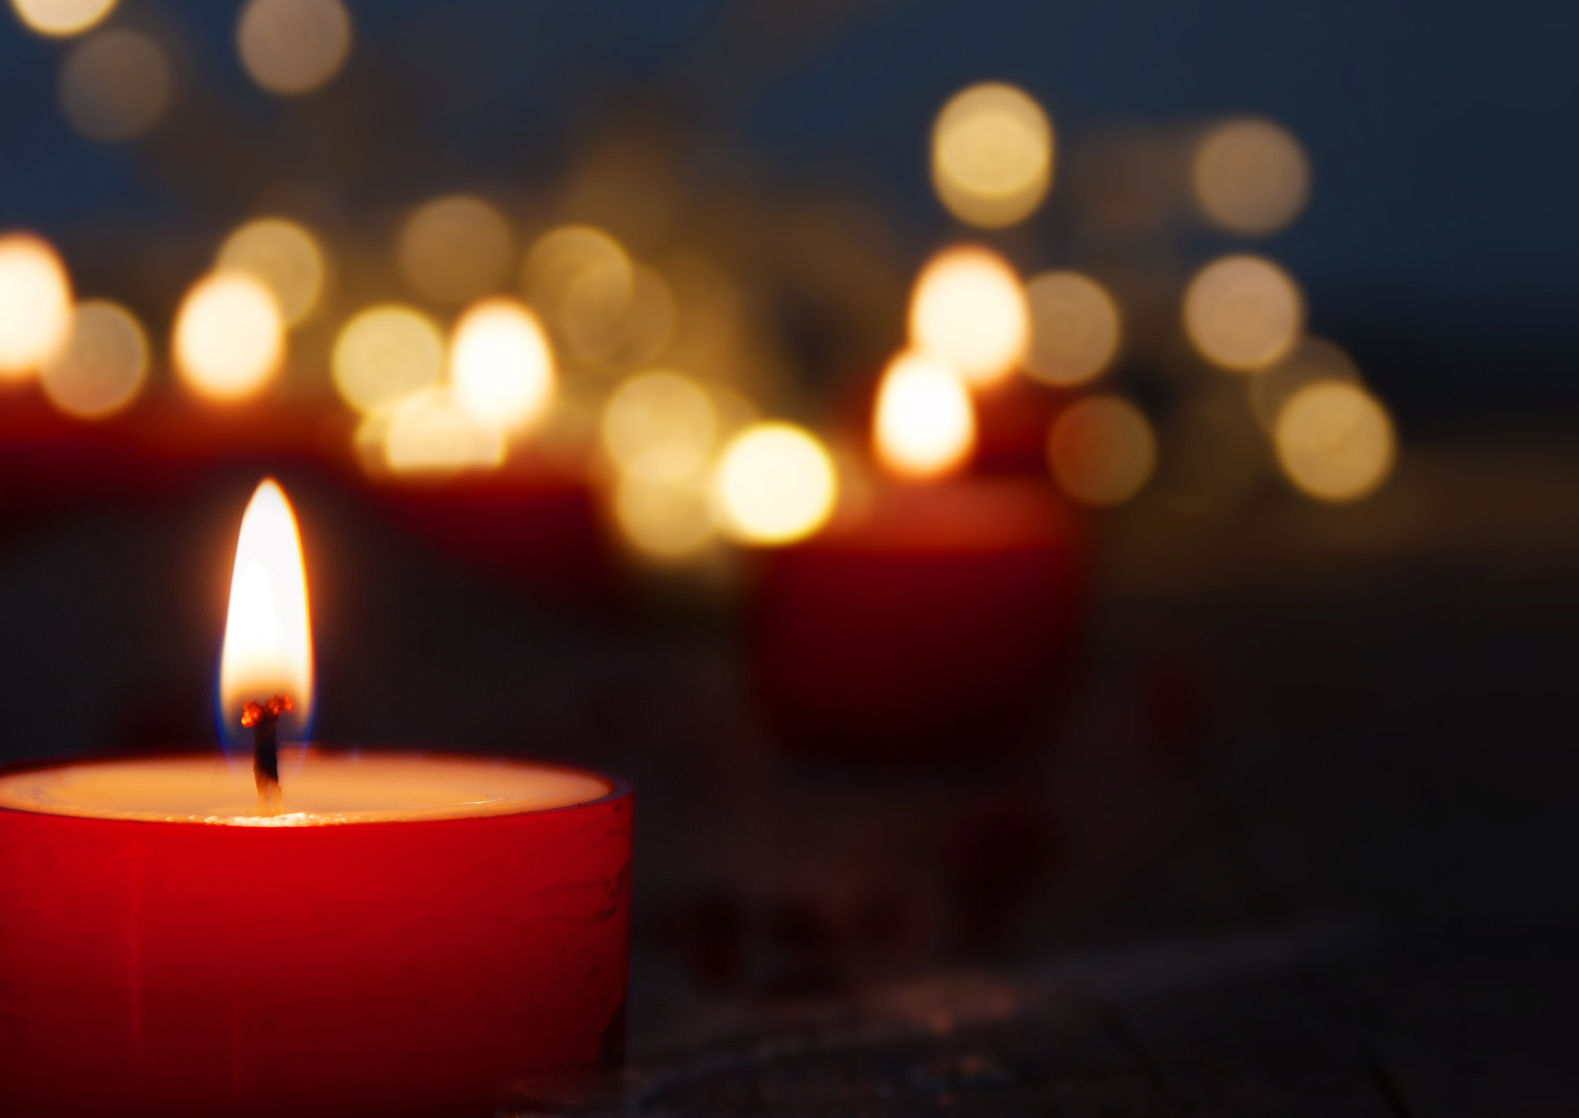 Candle Lighting Ceremony In Remembrance Of Children Is Dec. 10